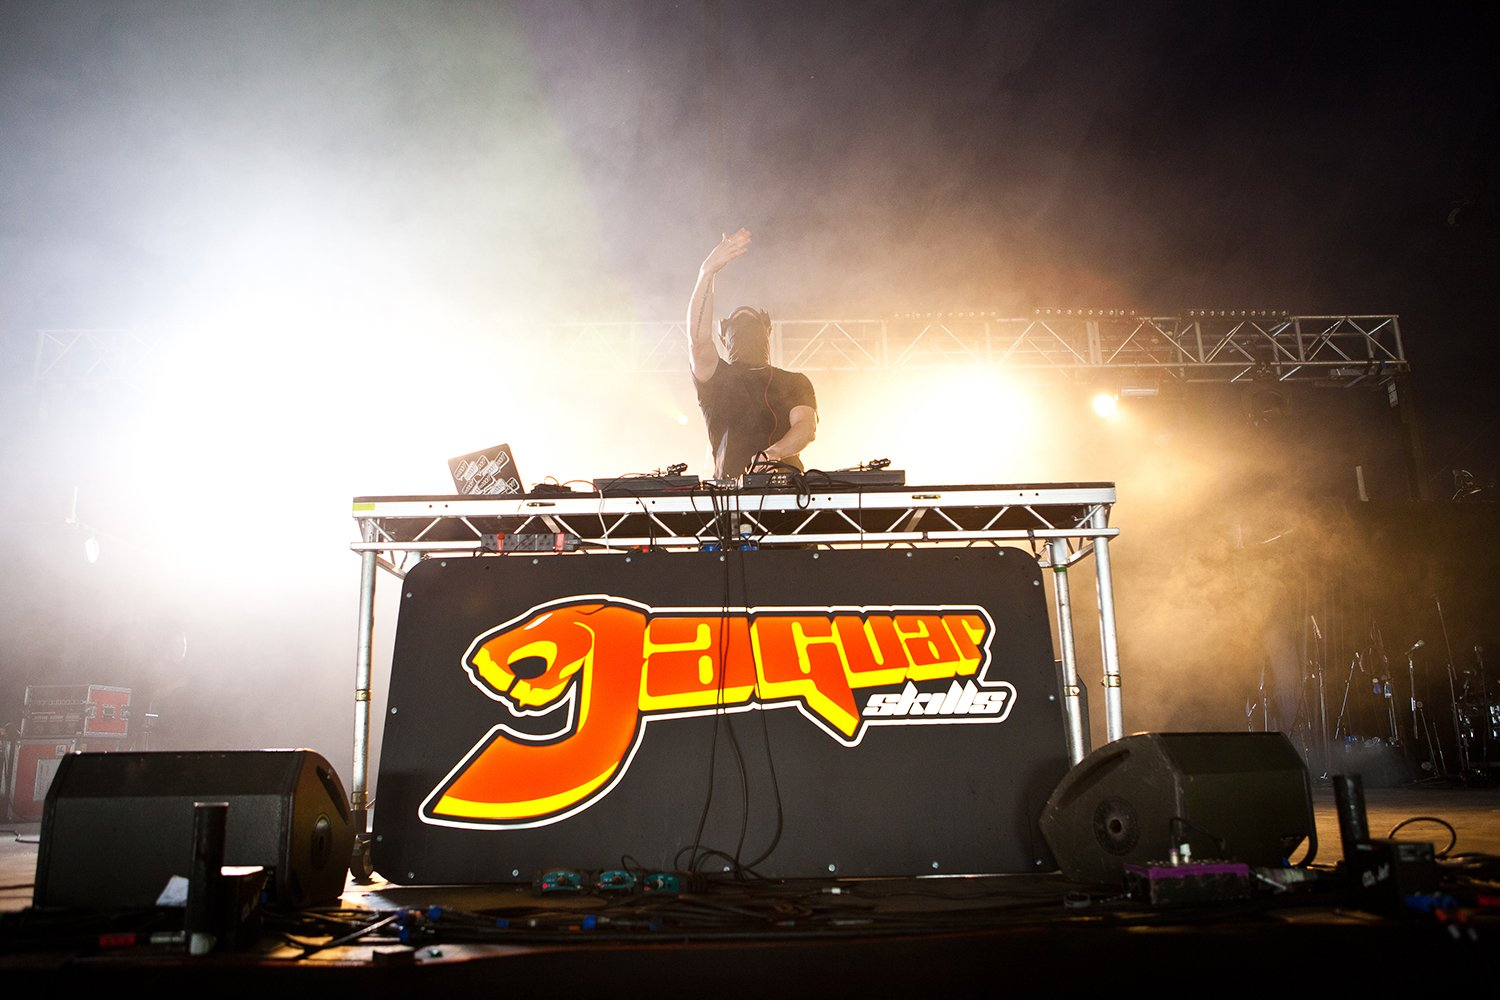 RT @OfficialRandL: #TBT to @JAGSKILLS at Leeds 2012 https://t.co/9yhV1SD6Qd